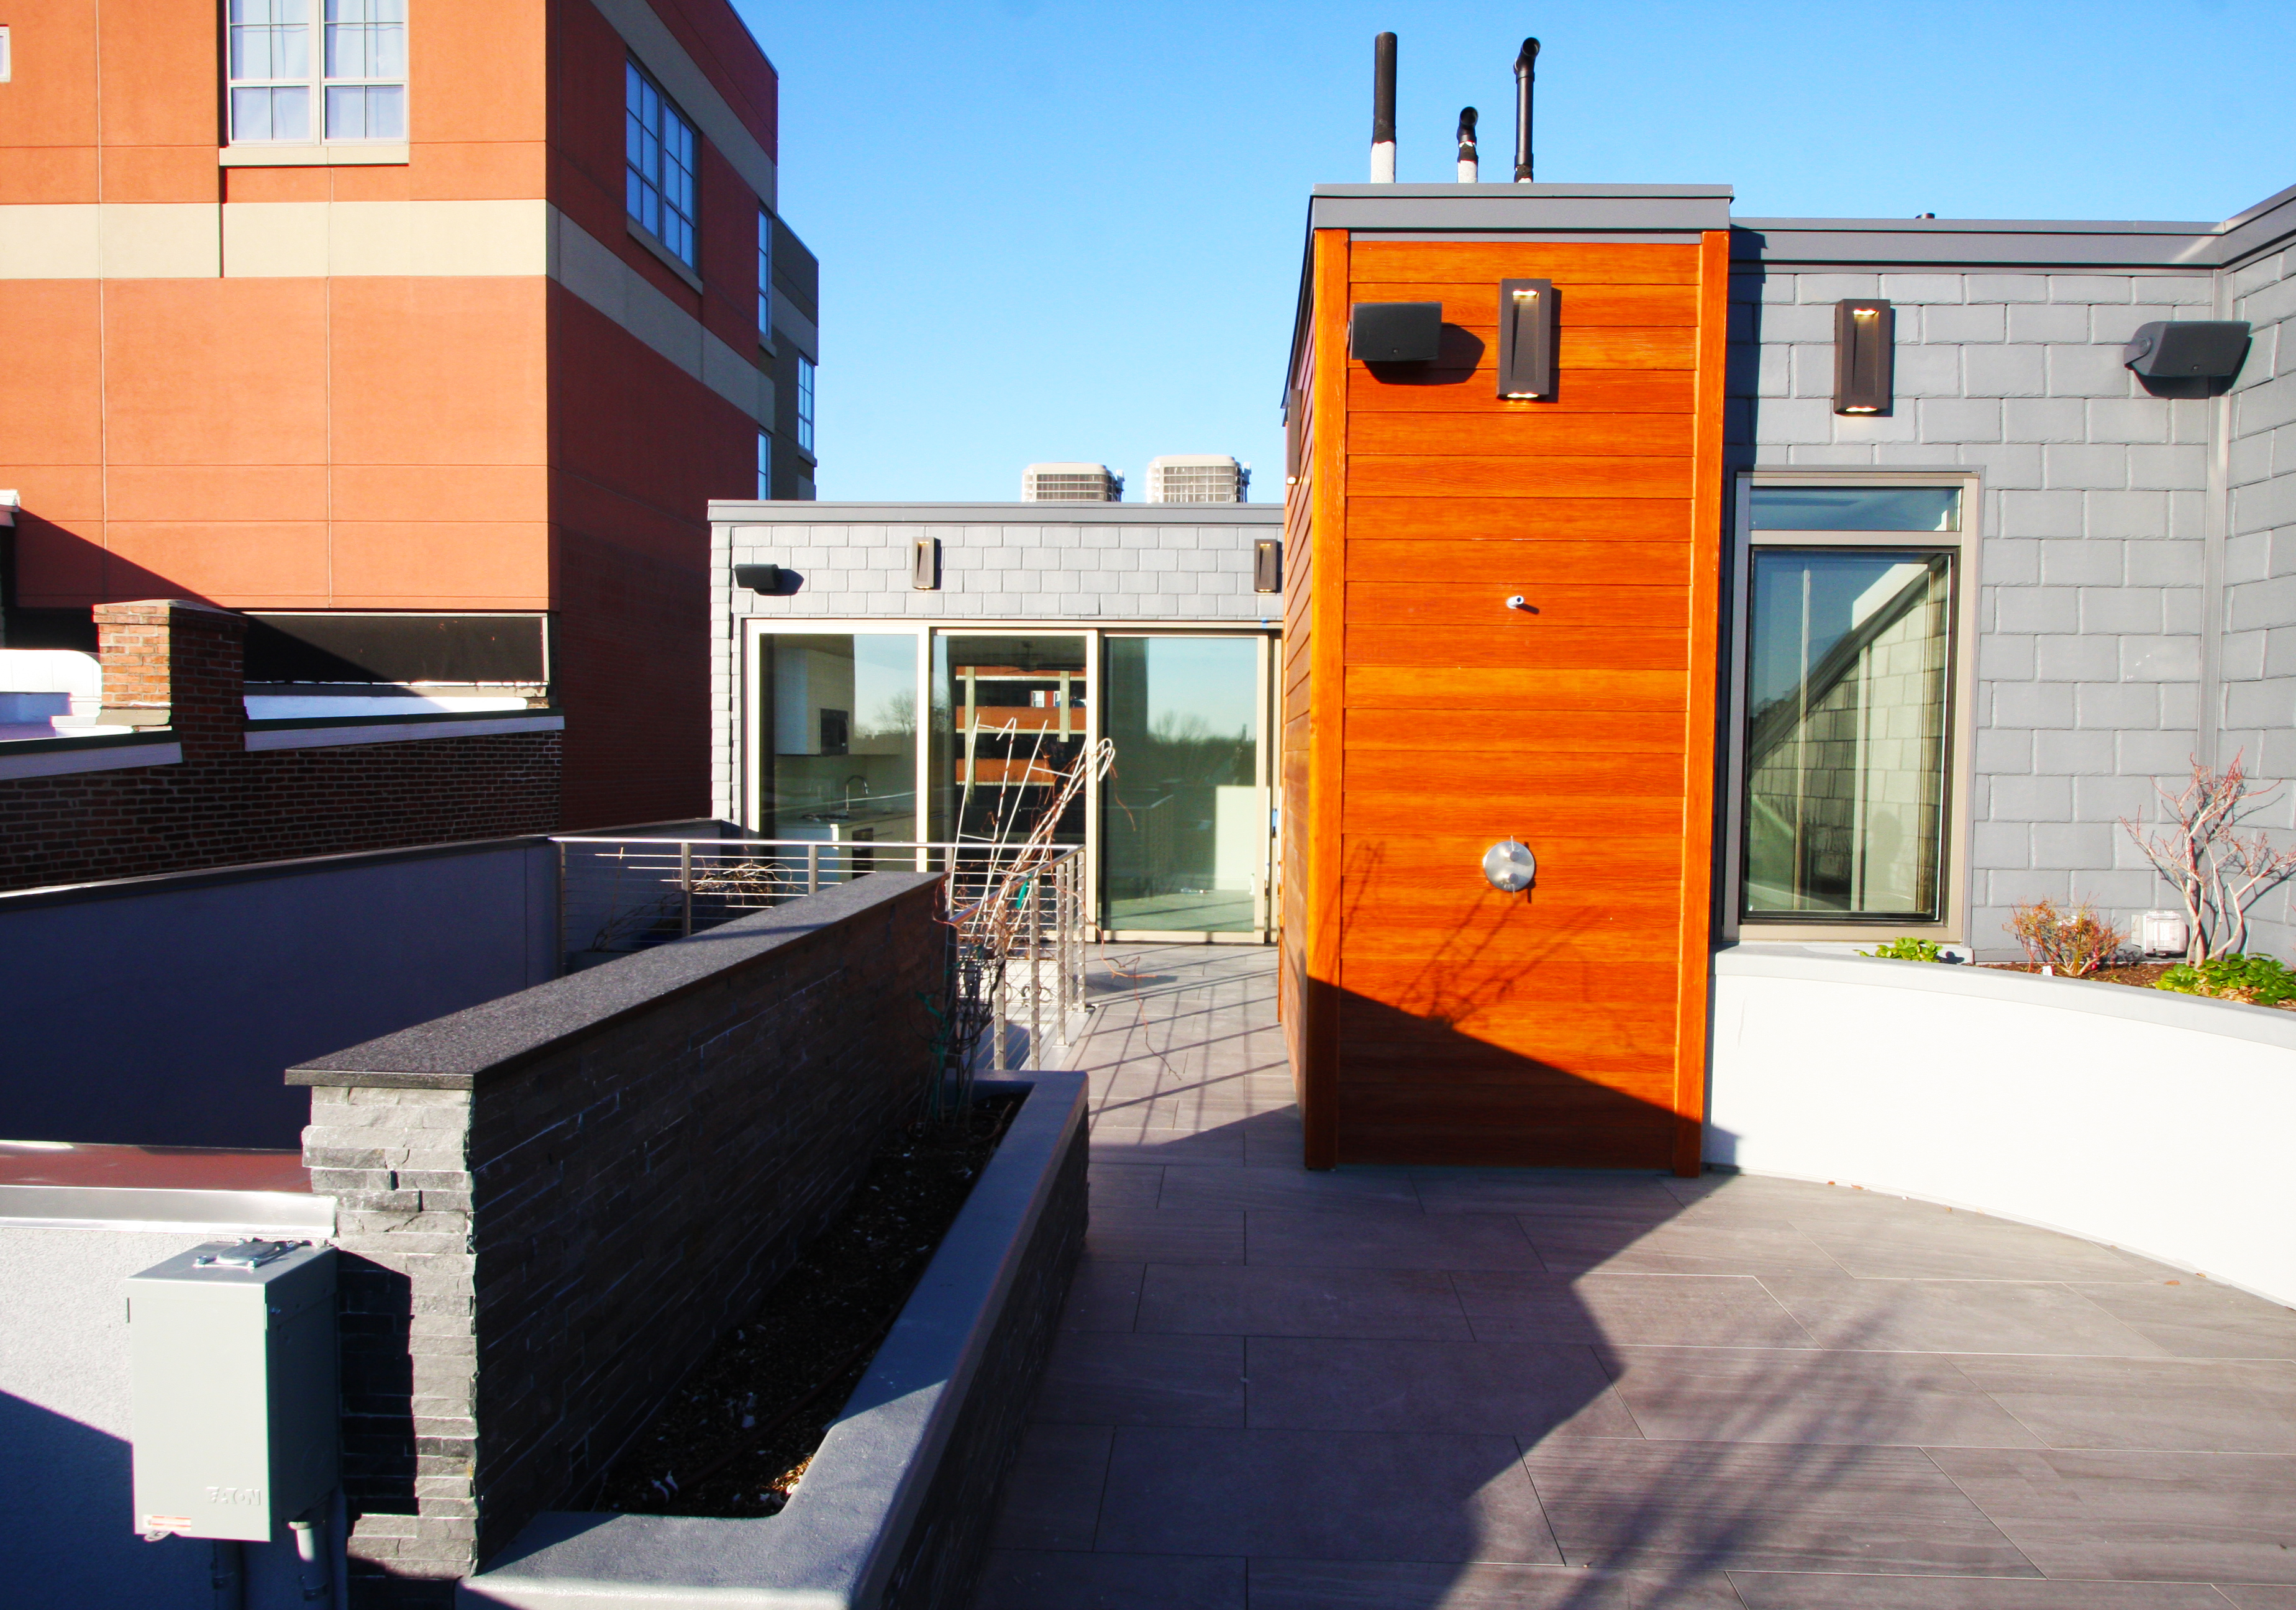 New Society Hill townhomes wow with unusual brick screen facade